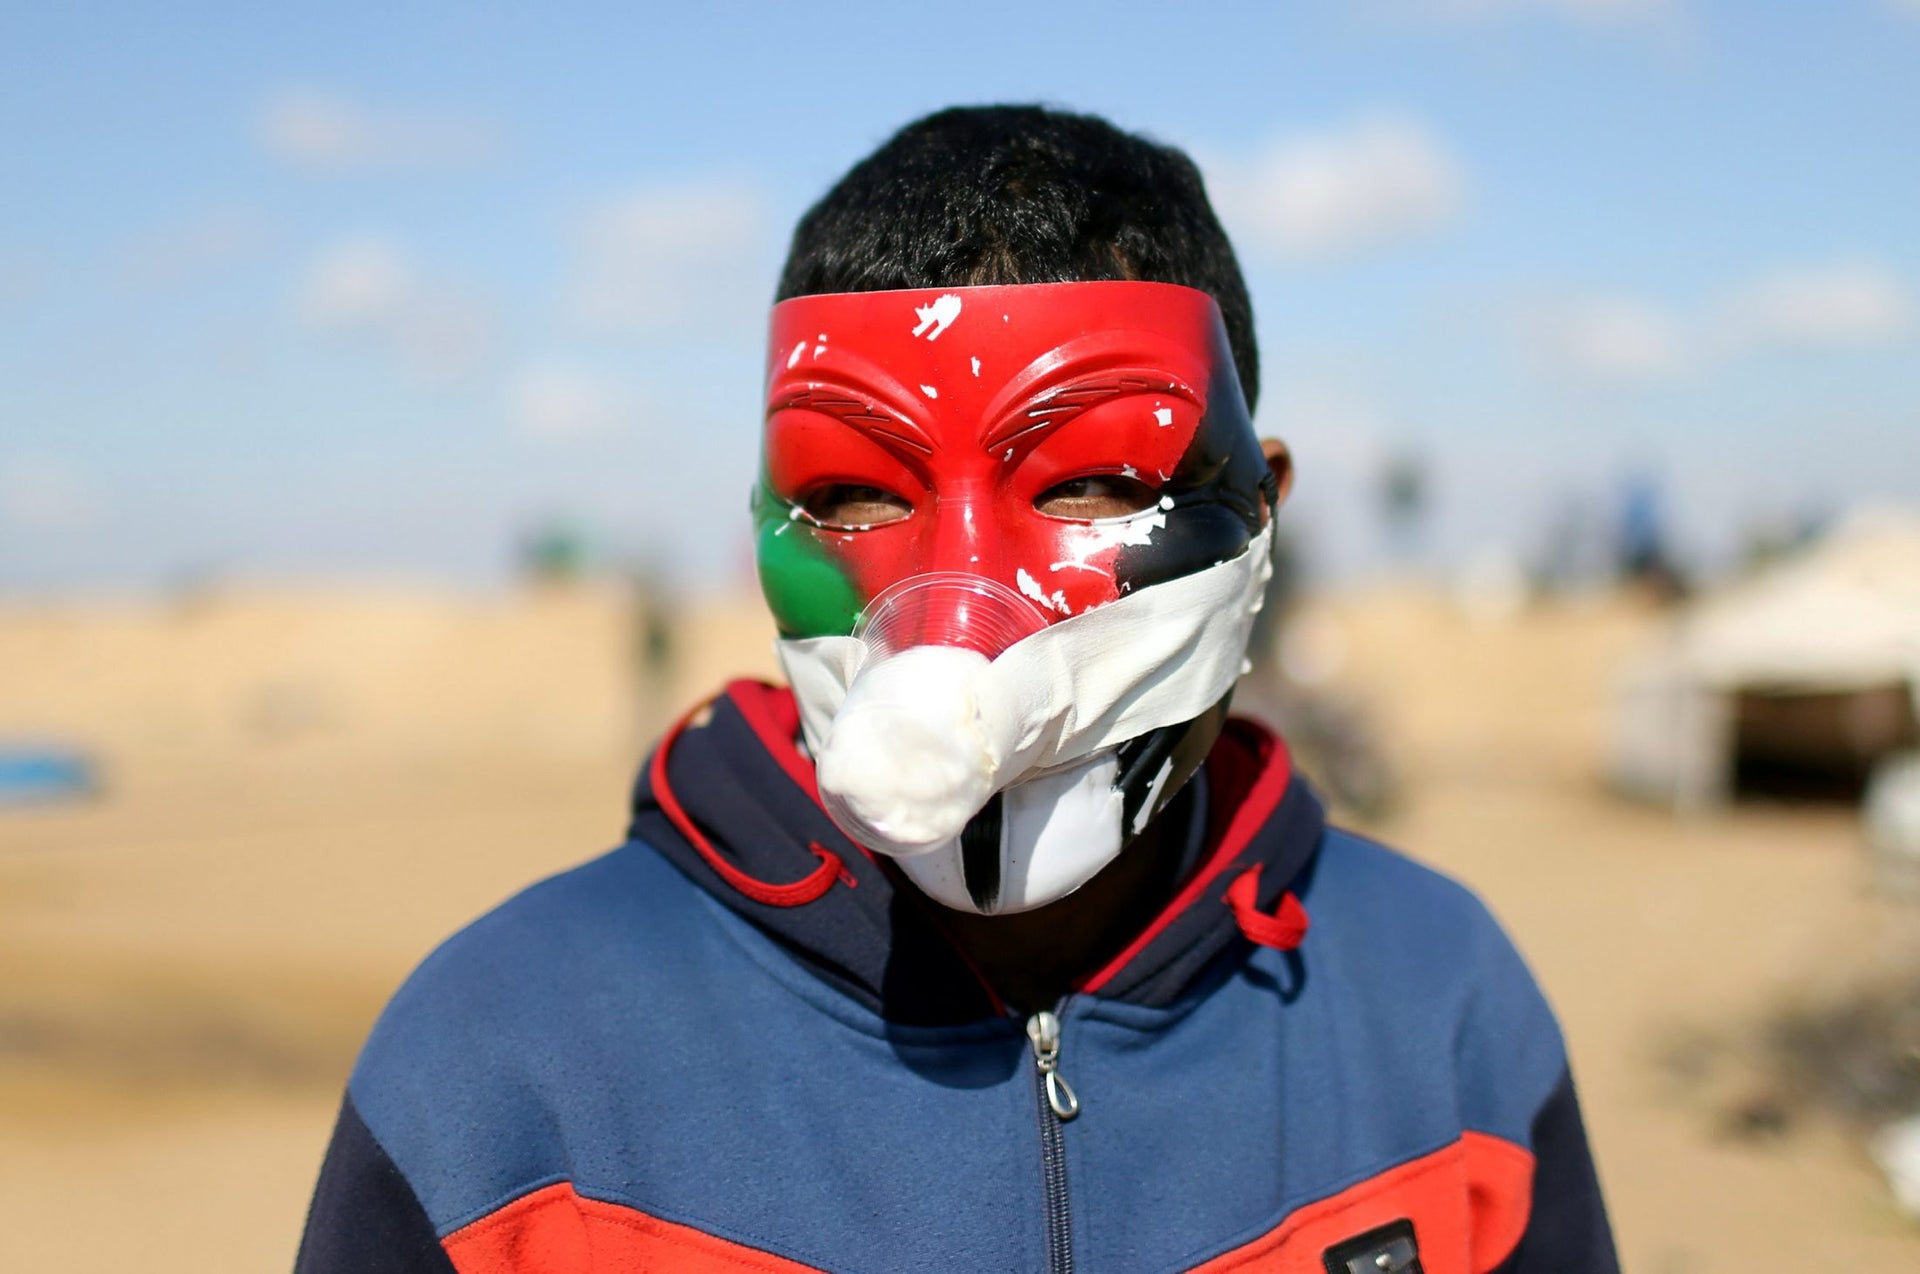 A Palestinian demonstrator wearing a mask covers his nose with a plastic cup filled with perfume and cotton to protect himself from inhaling tear gas fired by Israeli troops during a protest at the Israel-Gaza border in the southern Gaza Strip April 10, 2018. Picture taken April 10, 2018.